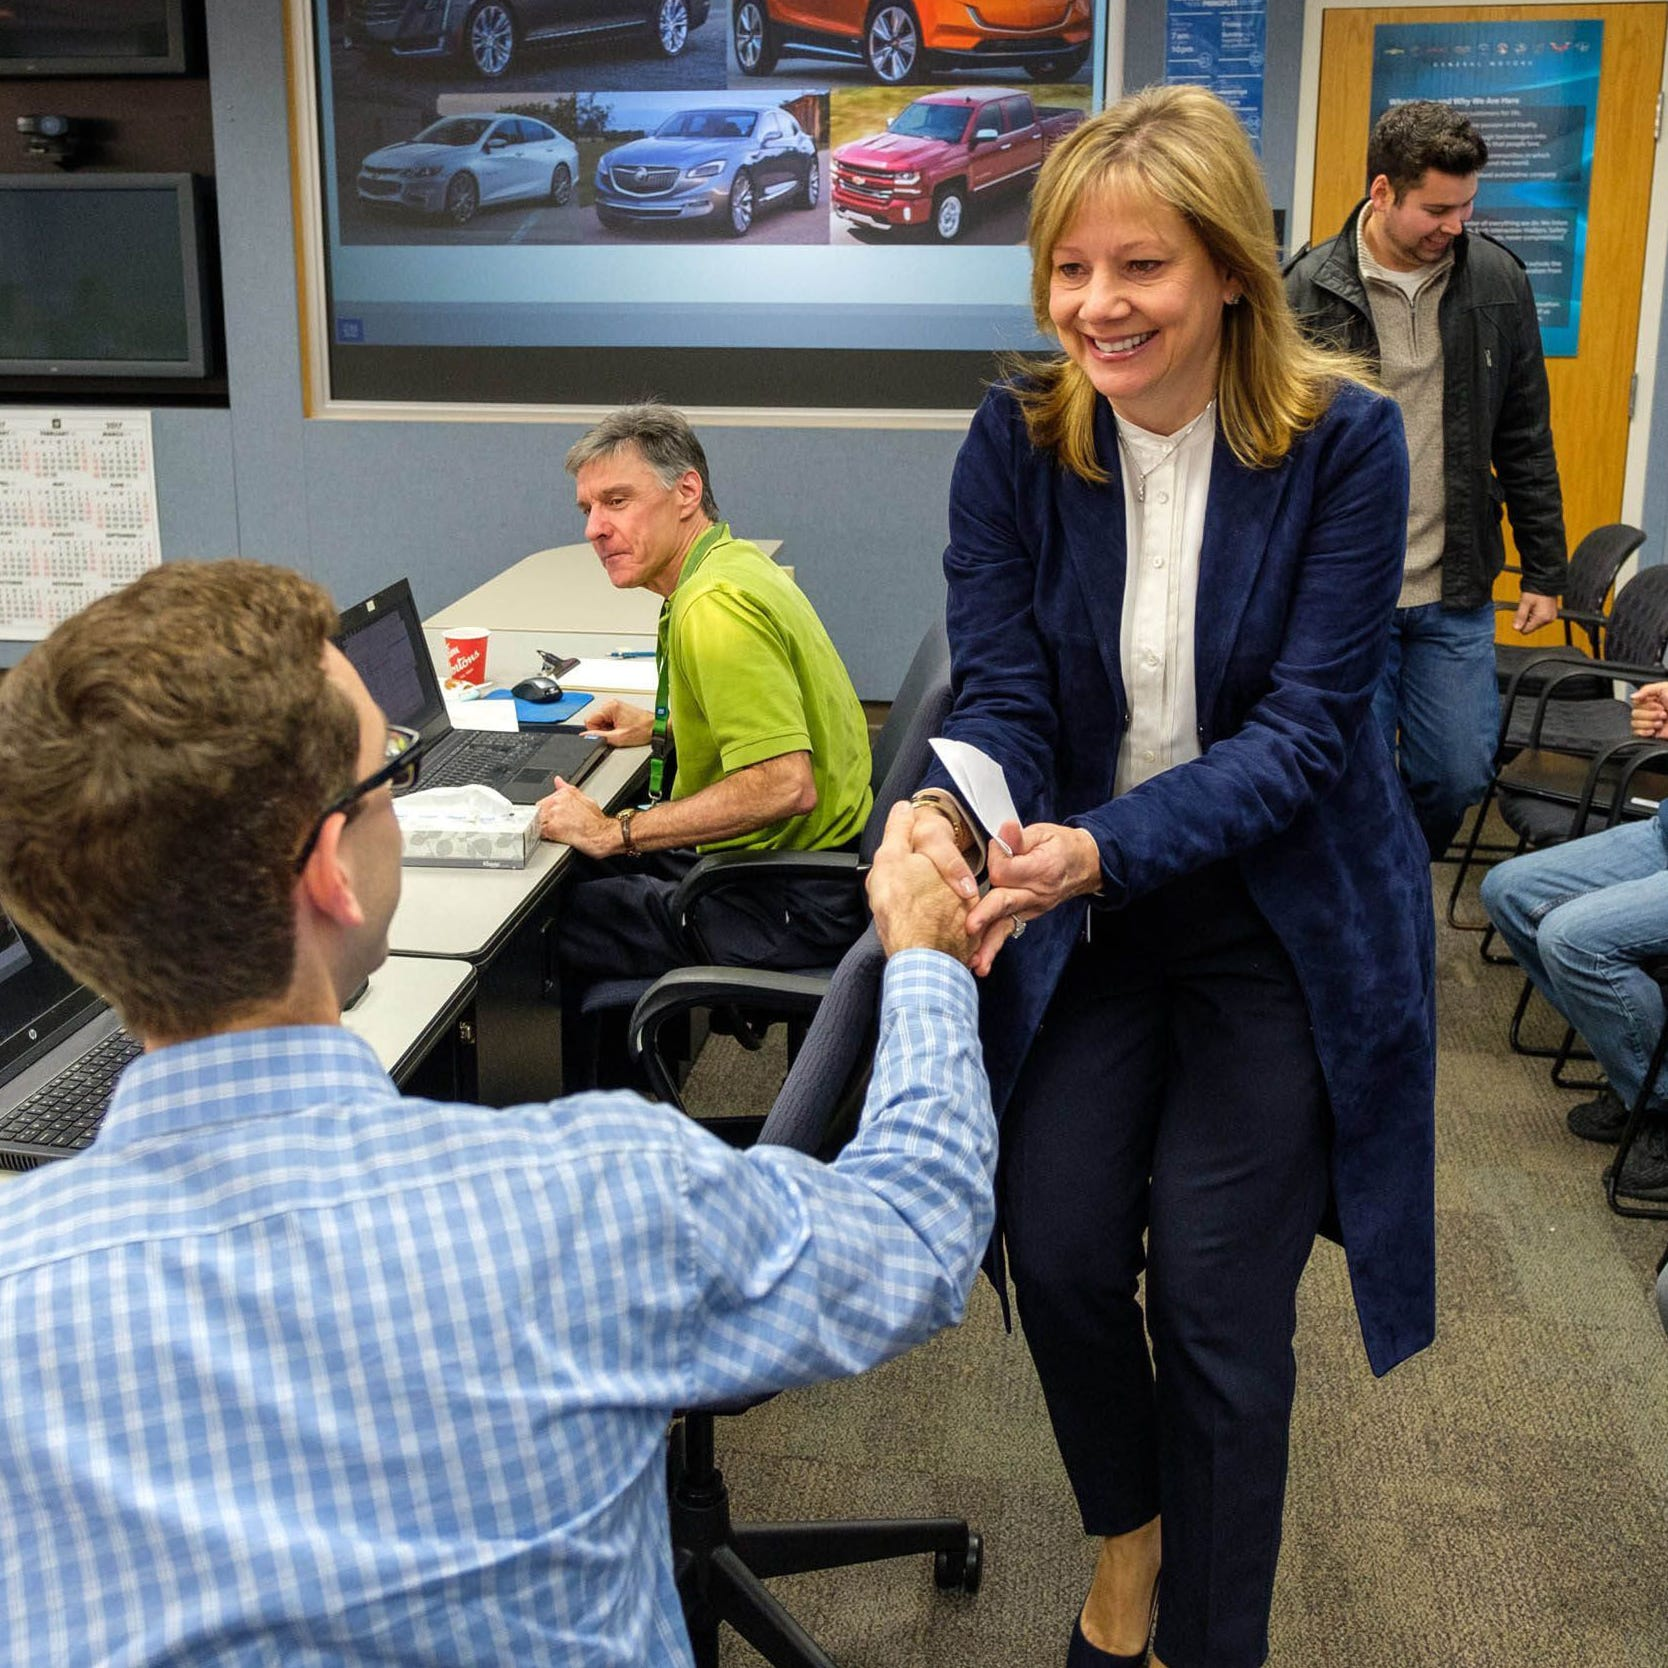 General Motors Chairman and CEO Mary Barra meets with electrification employees in November 2017 at the GM Milford Proving Grounds in Milford.